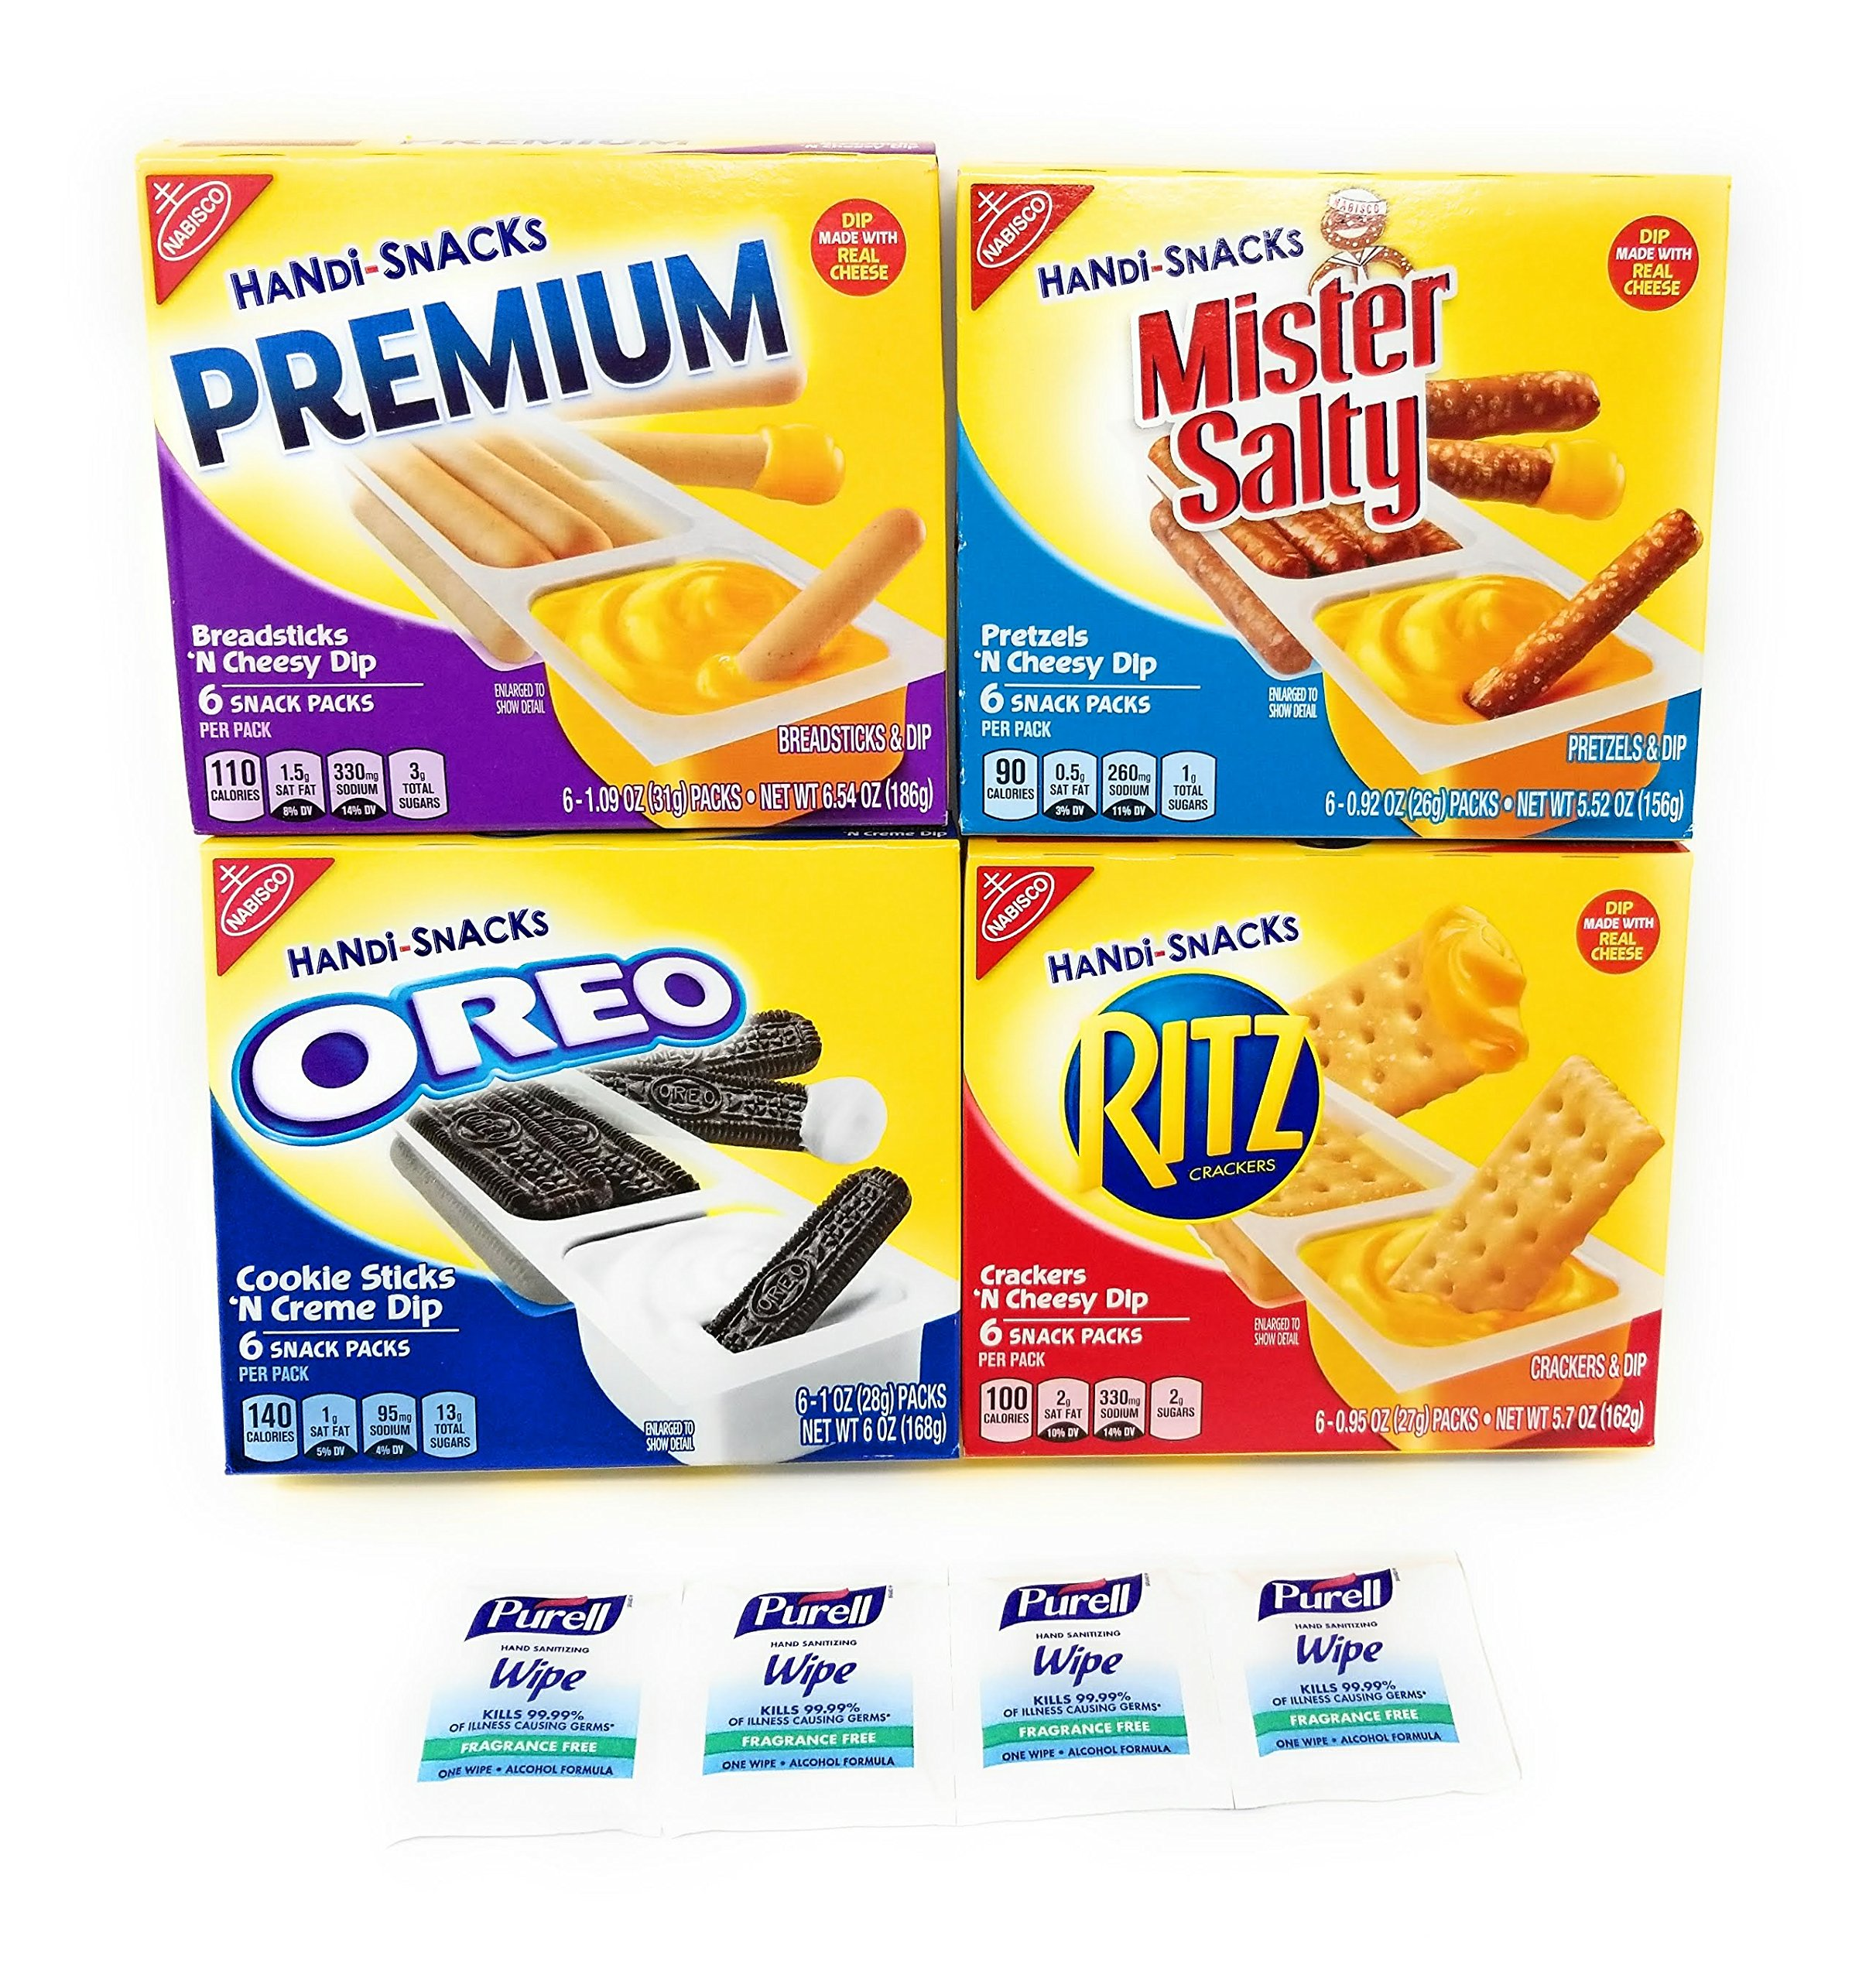 Kraft Handi-Snacks -Ritz, Oreo, Mister Salty, Premium - 4 Pack Variety With Purell Wipes